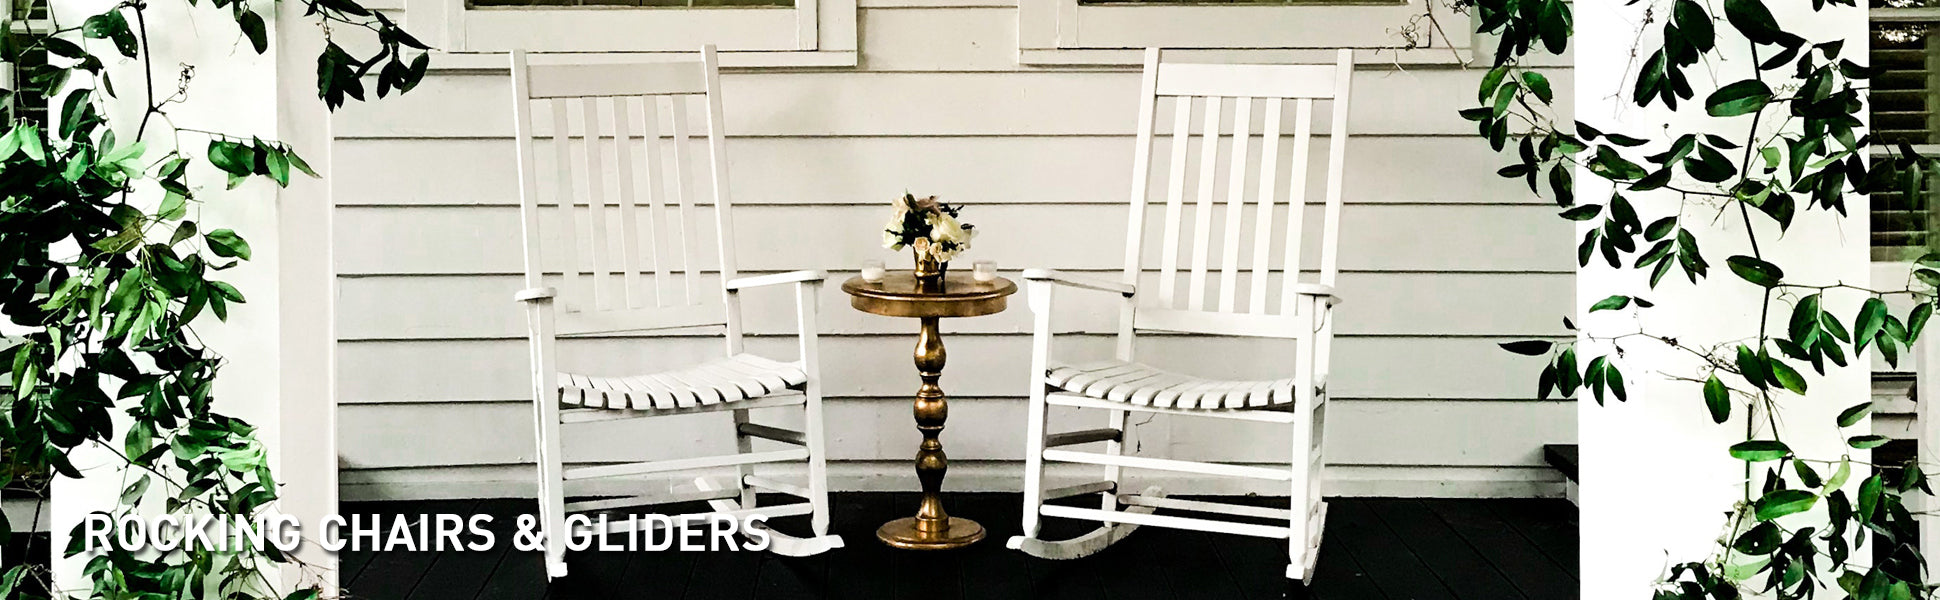 Rocking Chairs & Gliders